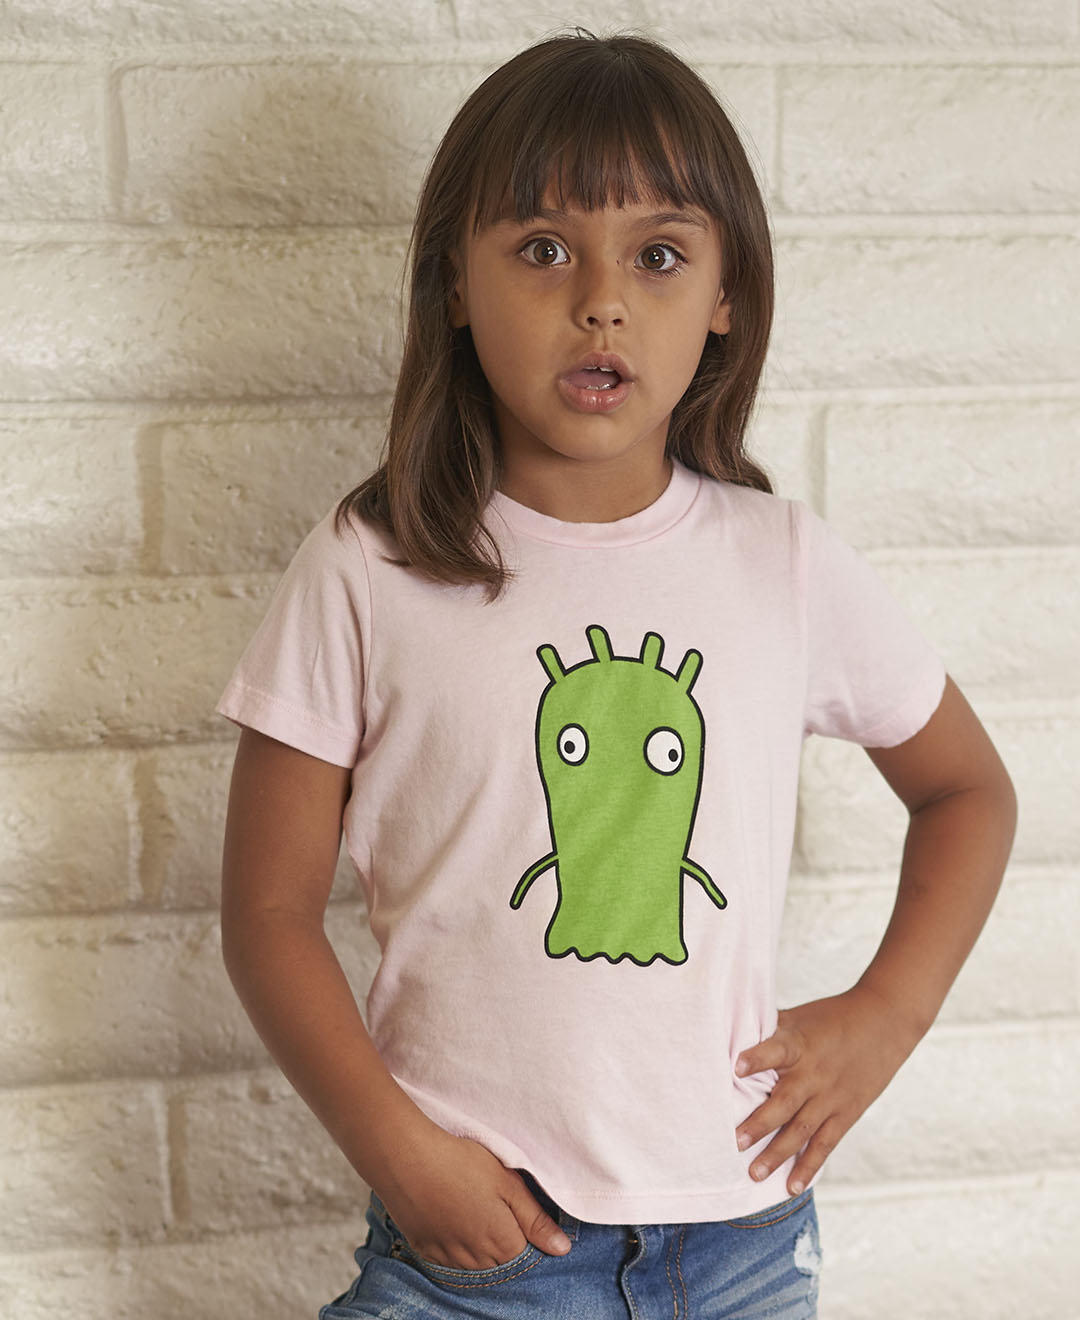 Girl wearing t-shirt with monster